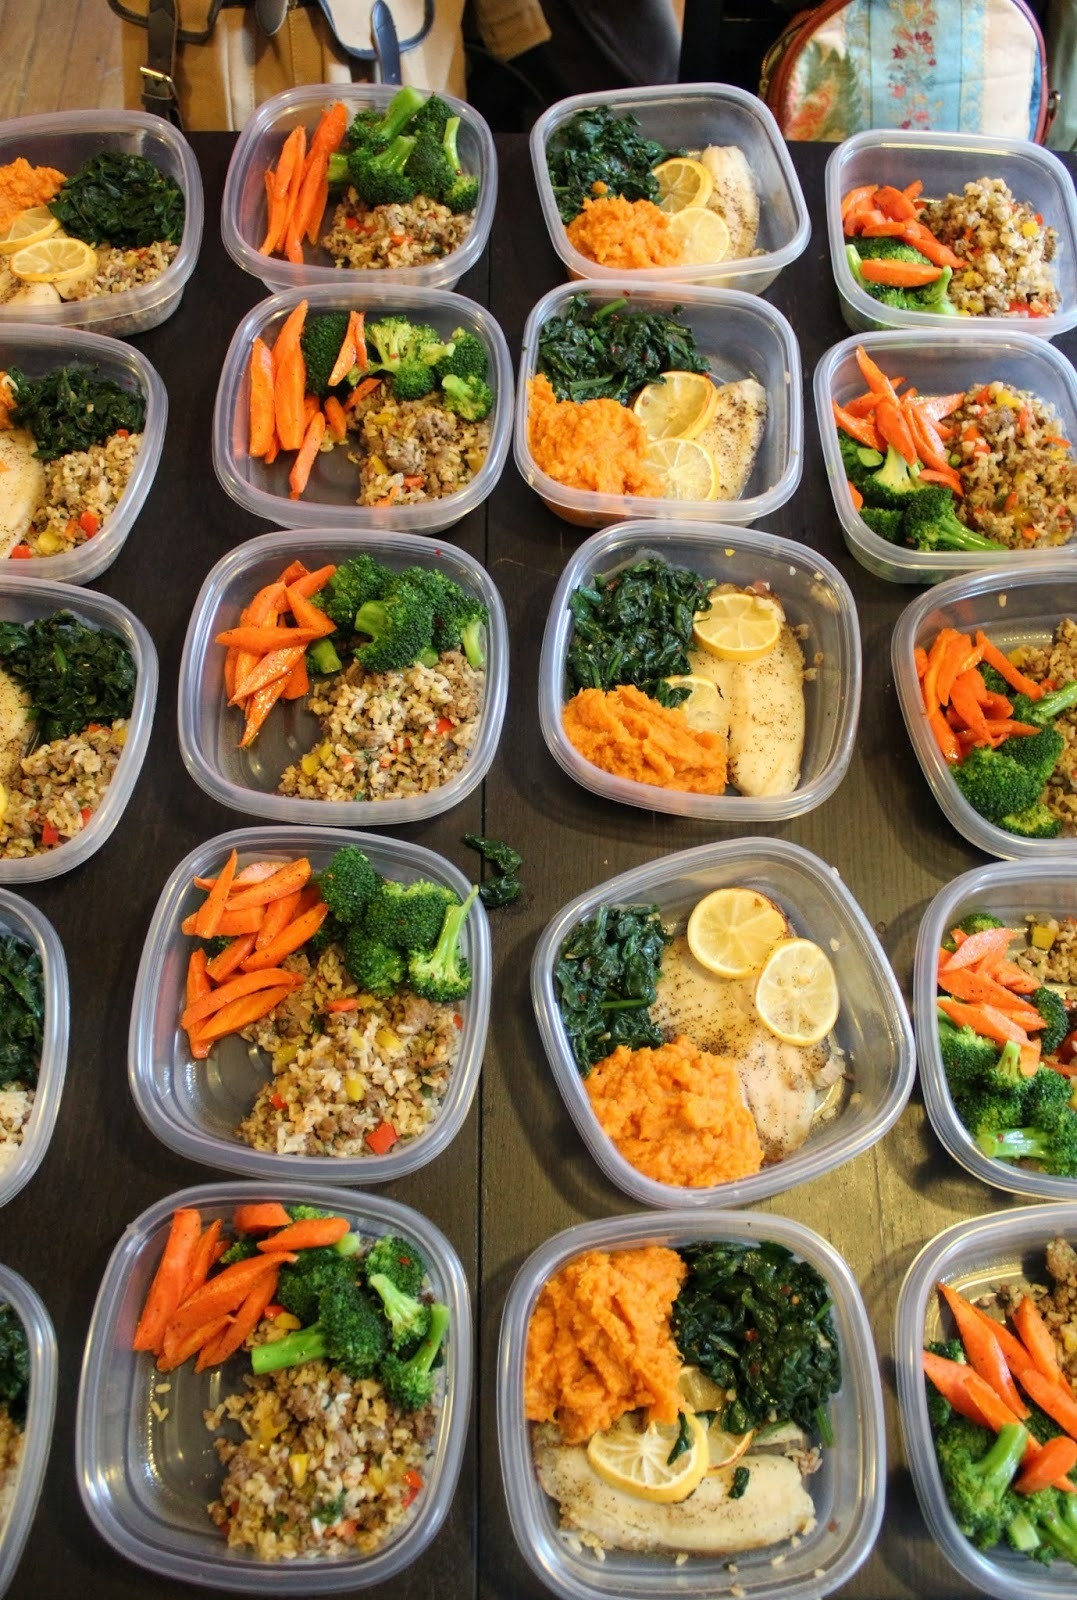 Healthy Lunch And Dinner Ideas  Healthy Meal Prep Ideas For The WeekWritings and Papers